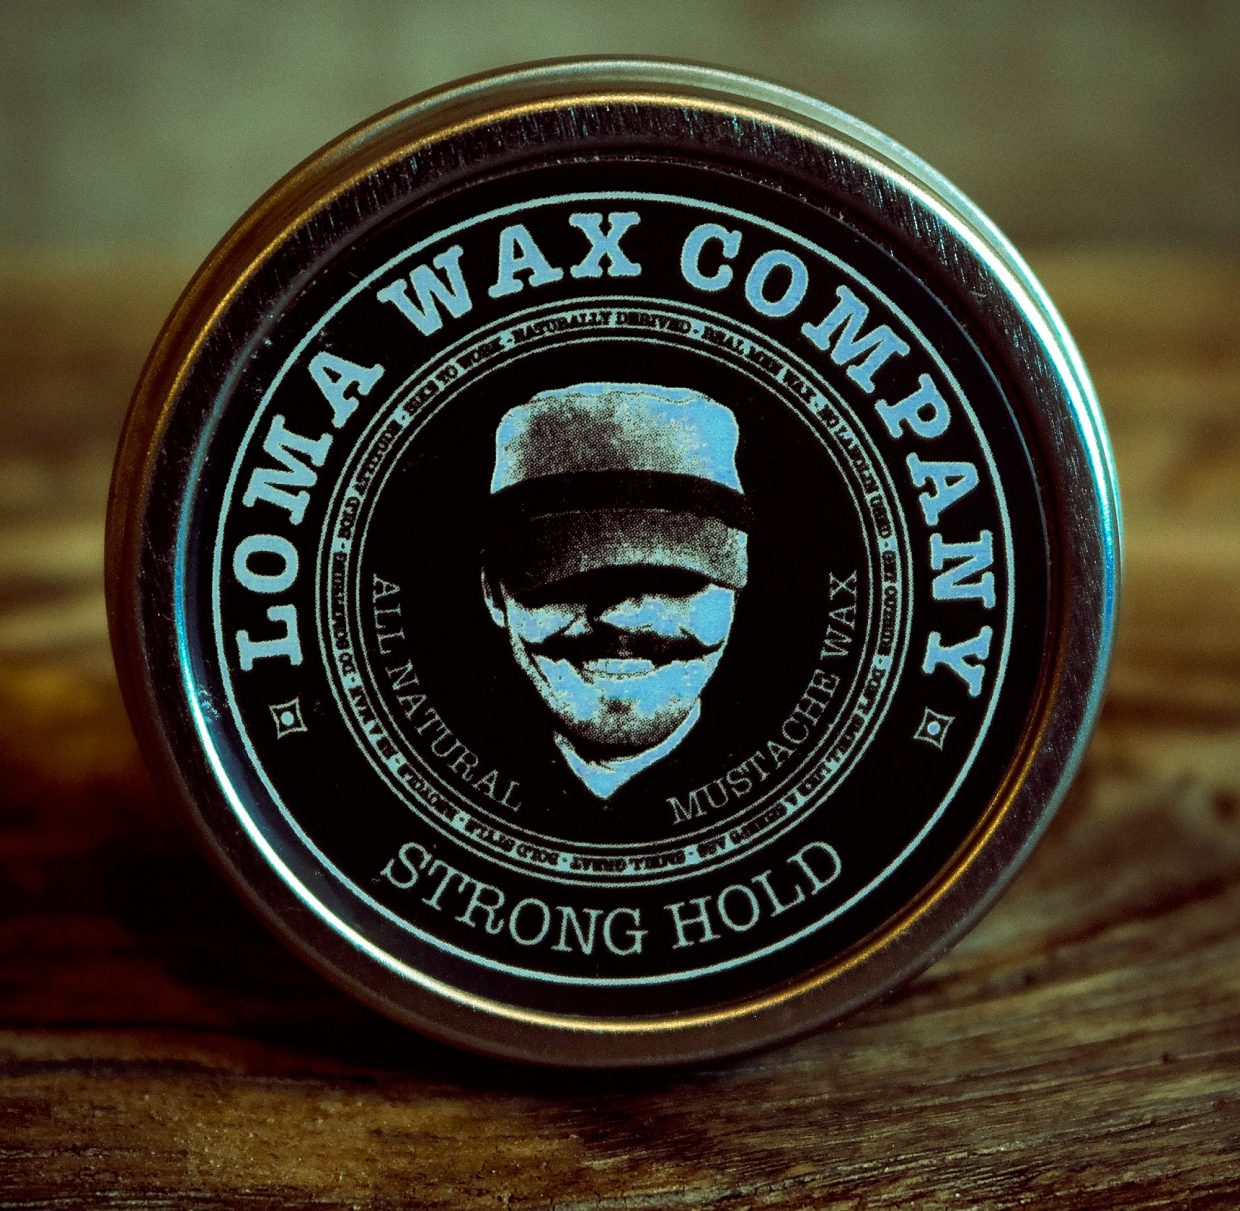 Loma Wax Company, a small Grand Valley business, offers two types of mustache wax and one type of beard oil. Each product is $12 a piece.